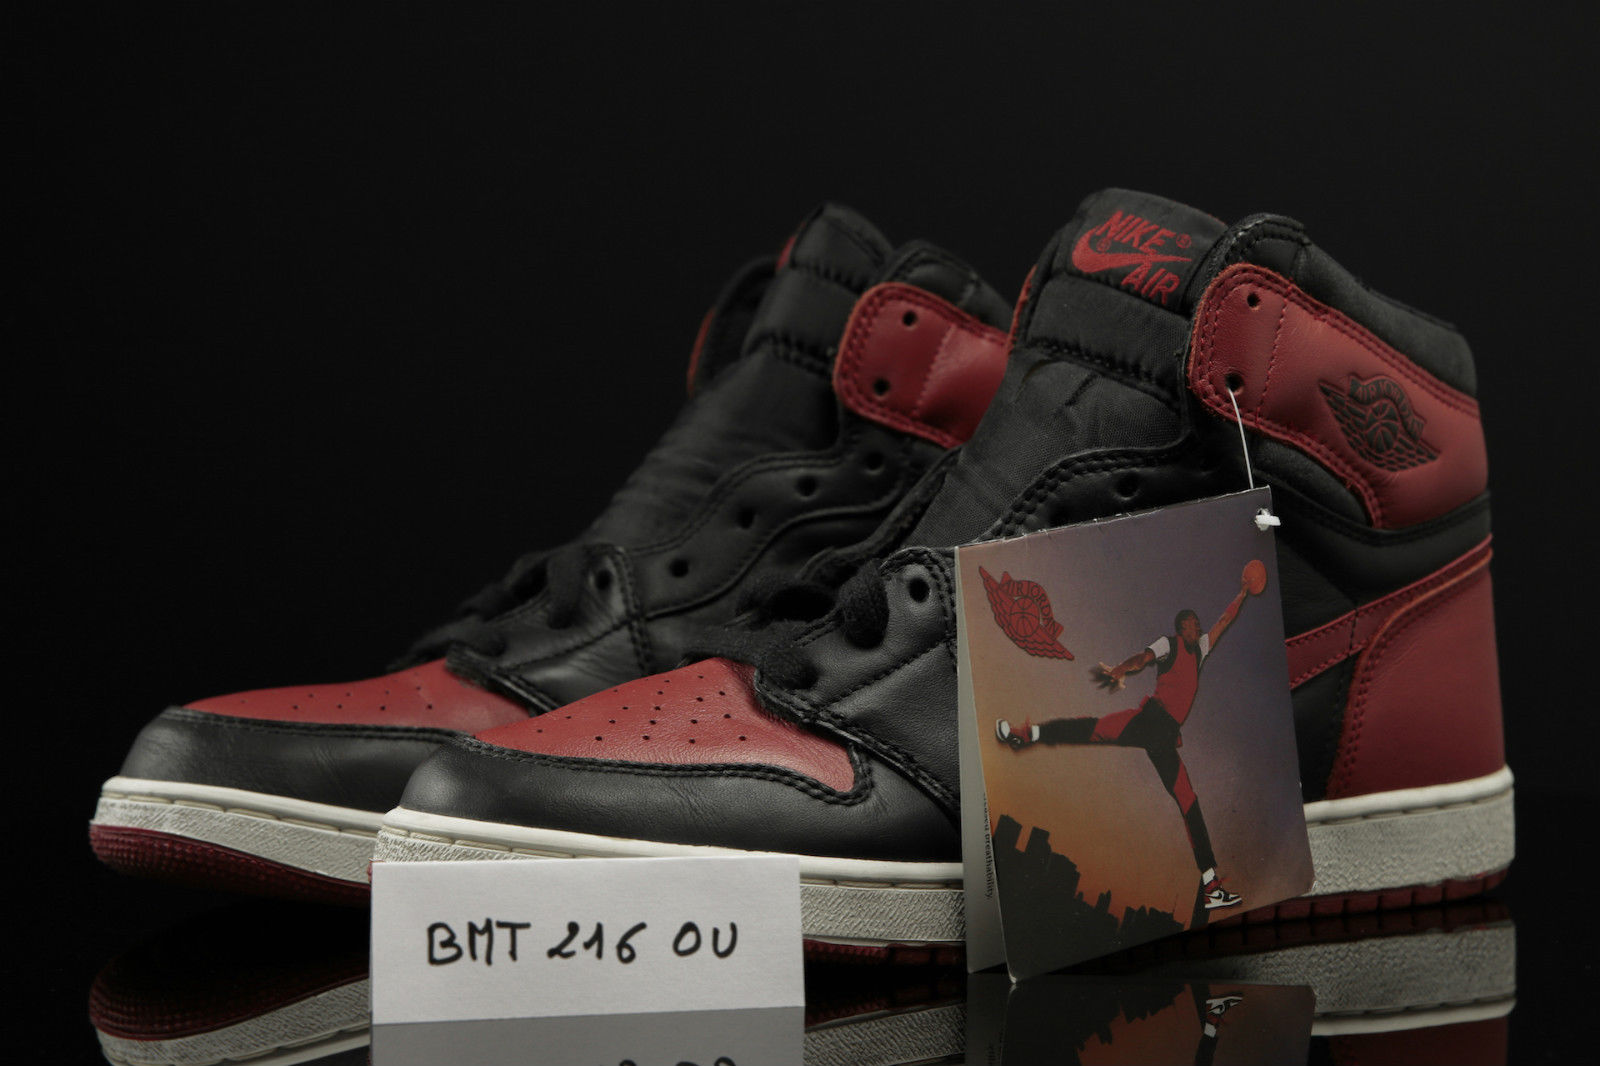 ccbd2d9e8a2a38 The 23 Most Rare and Expensive Air Jordans on eBay Right Now